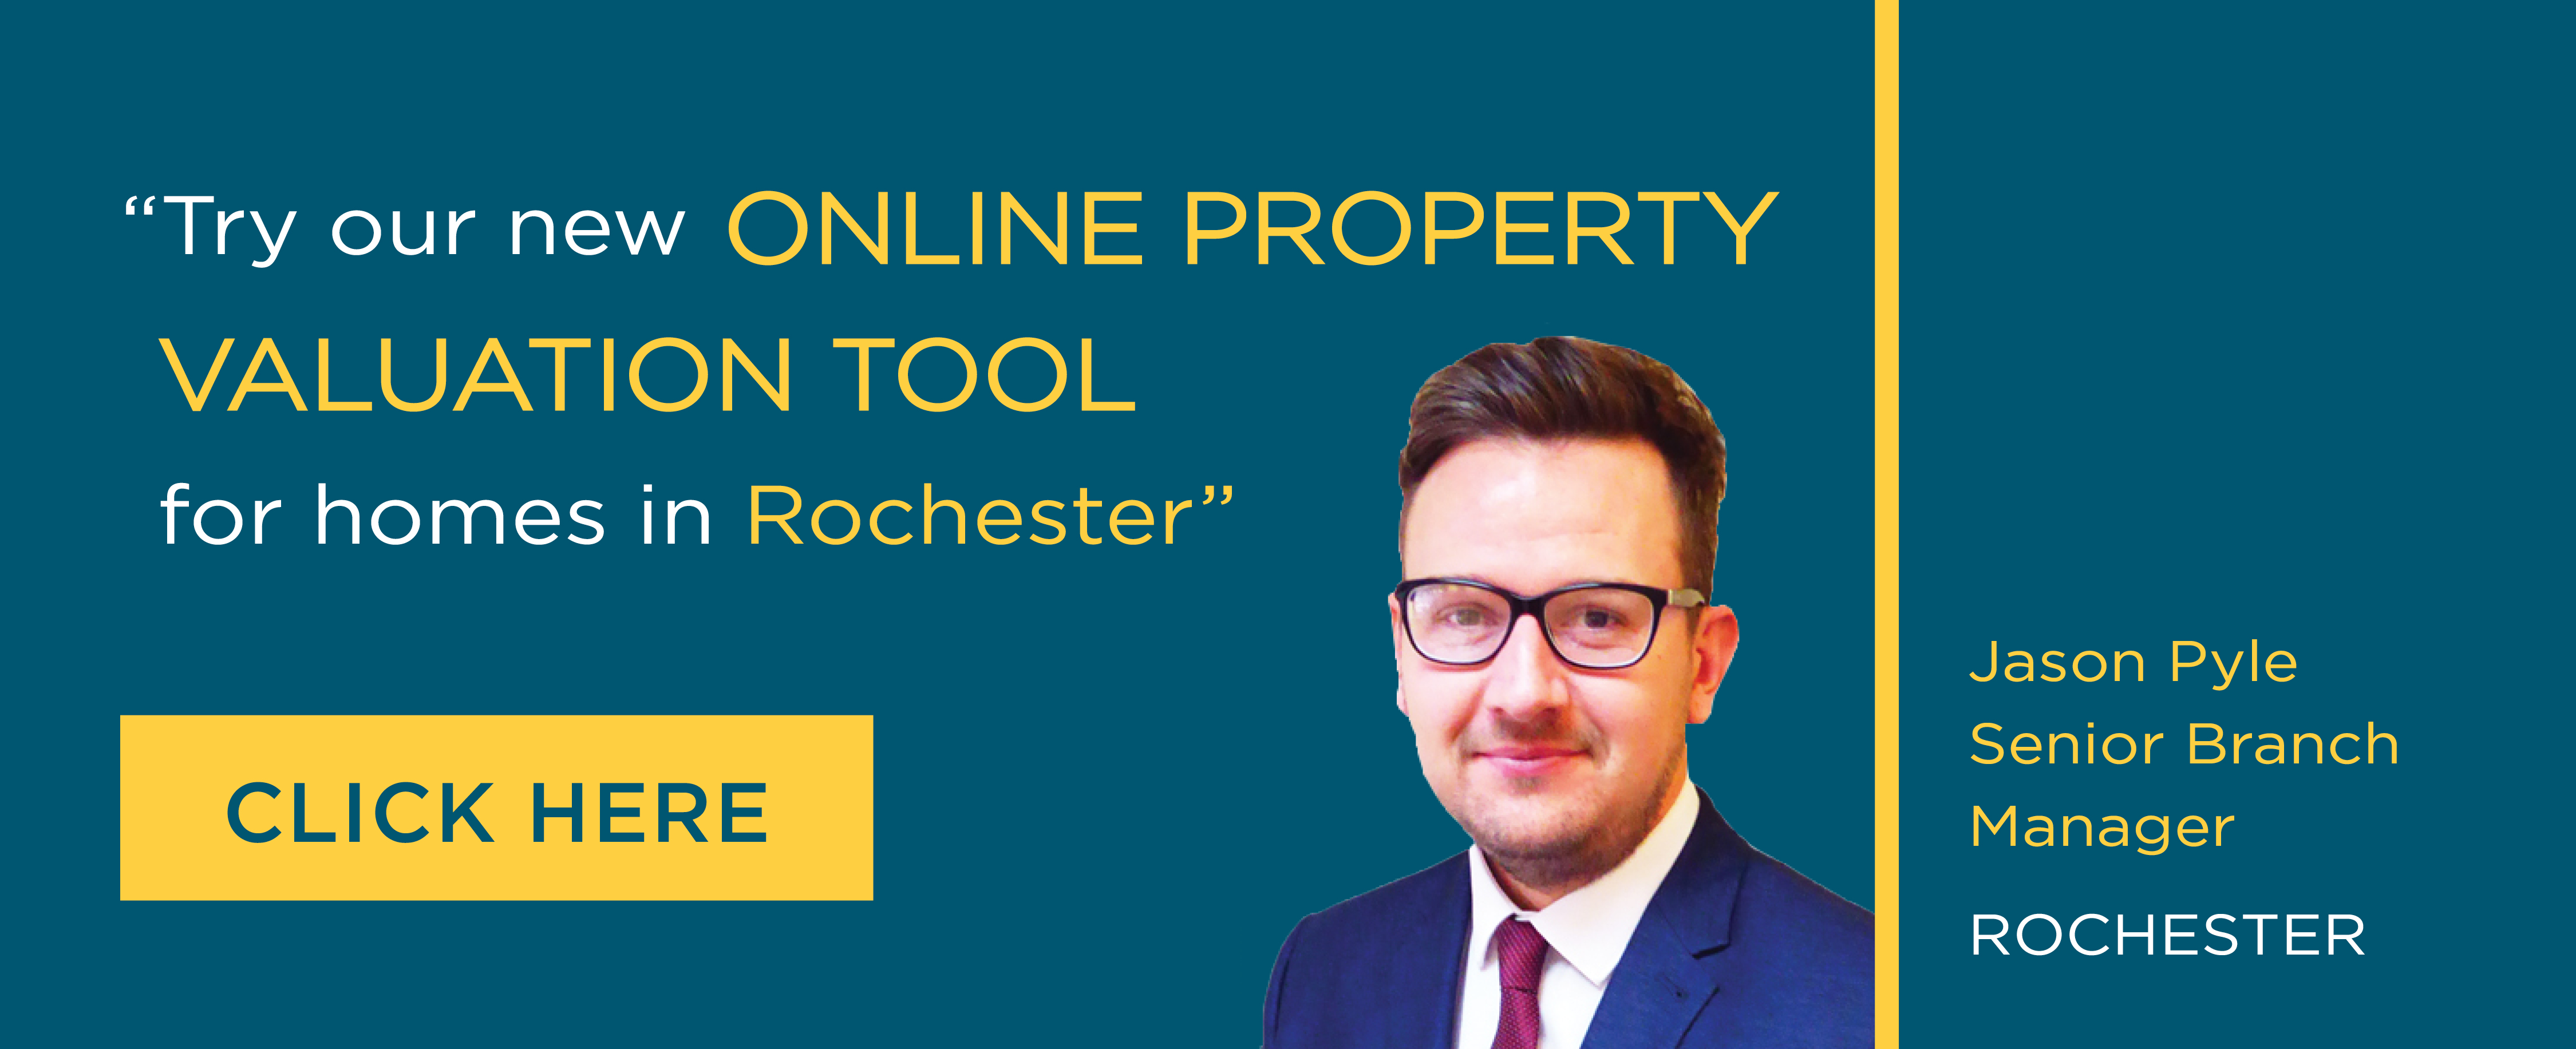 Online Valuation Tool website banner Rochester